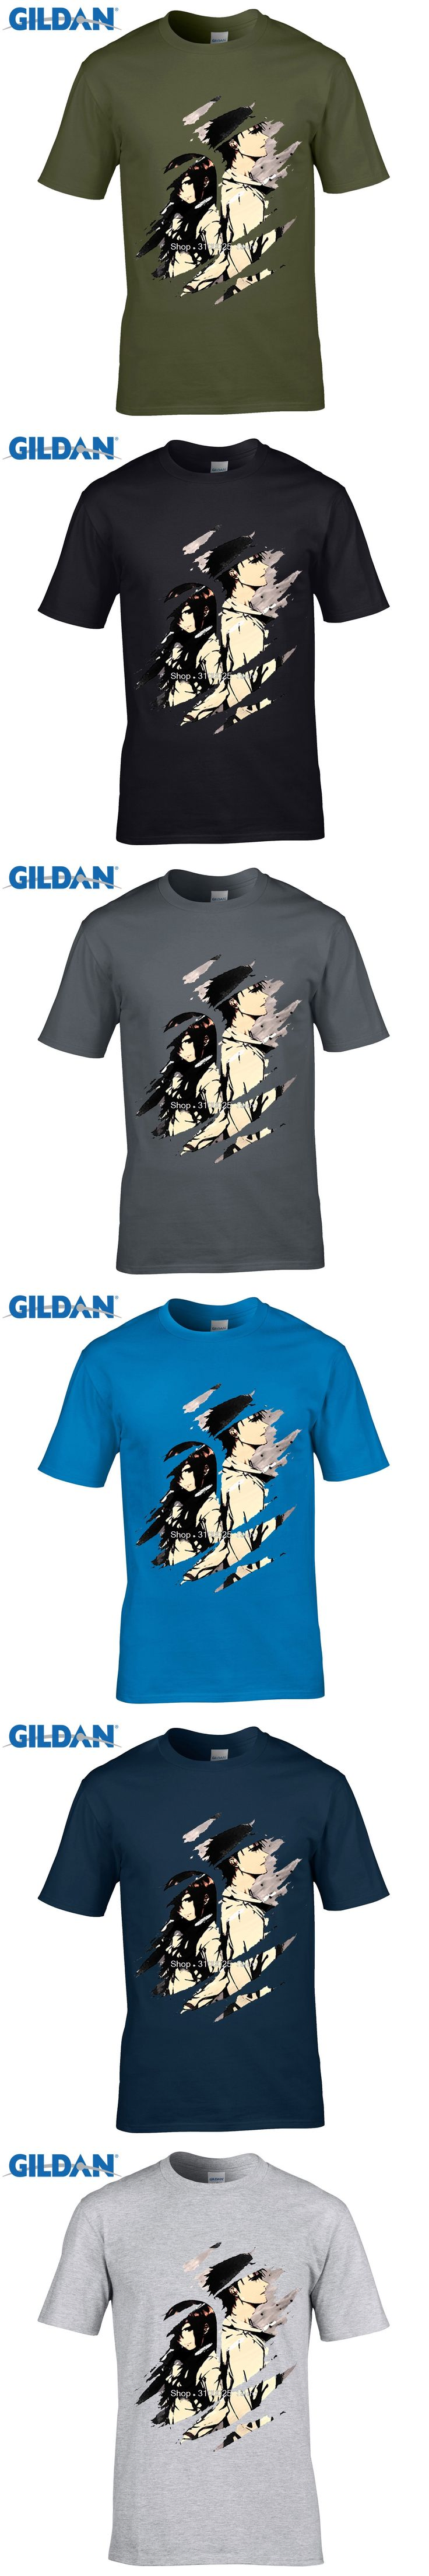 GILDAN customised t-shirts Newest Classic Japanese Anime Steins Gate T Shirt   Cartoon Makise Kurisu Custom T-Shirt